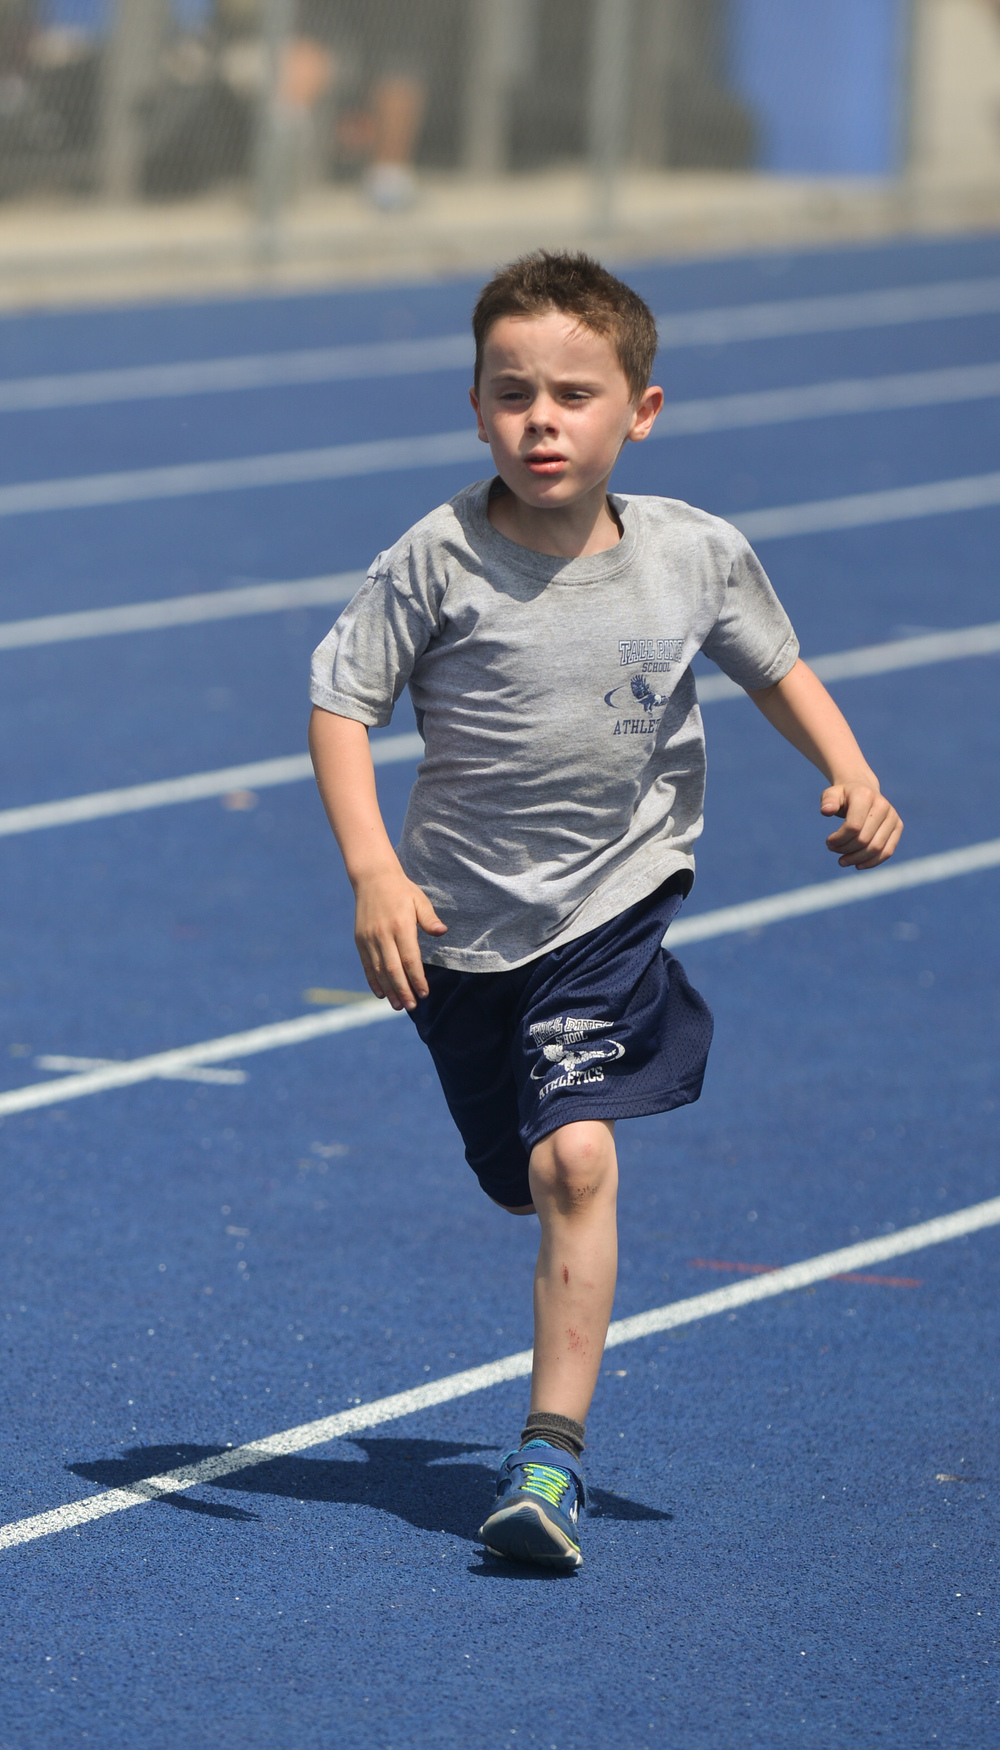 Track and FIeld - Ching 2015 - U10 (8 of 9).jpg